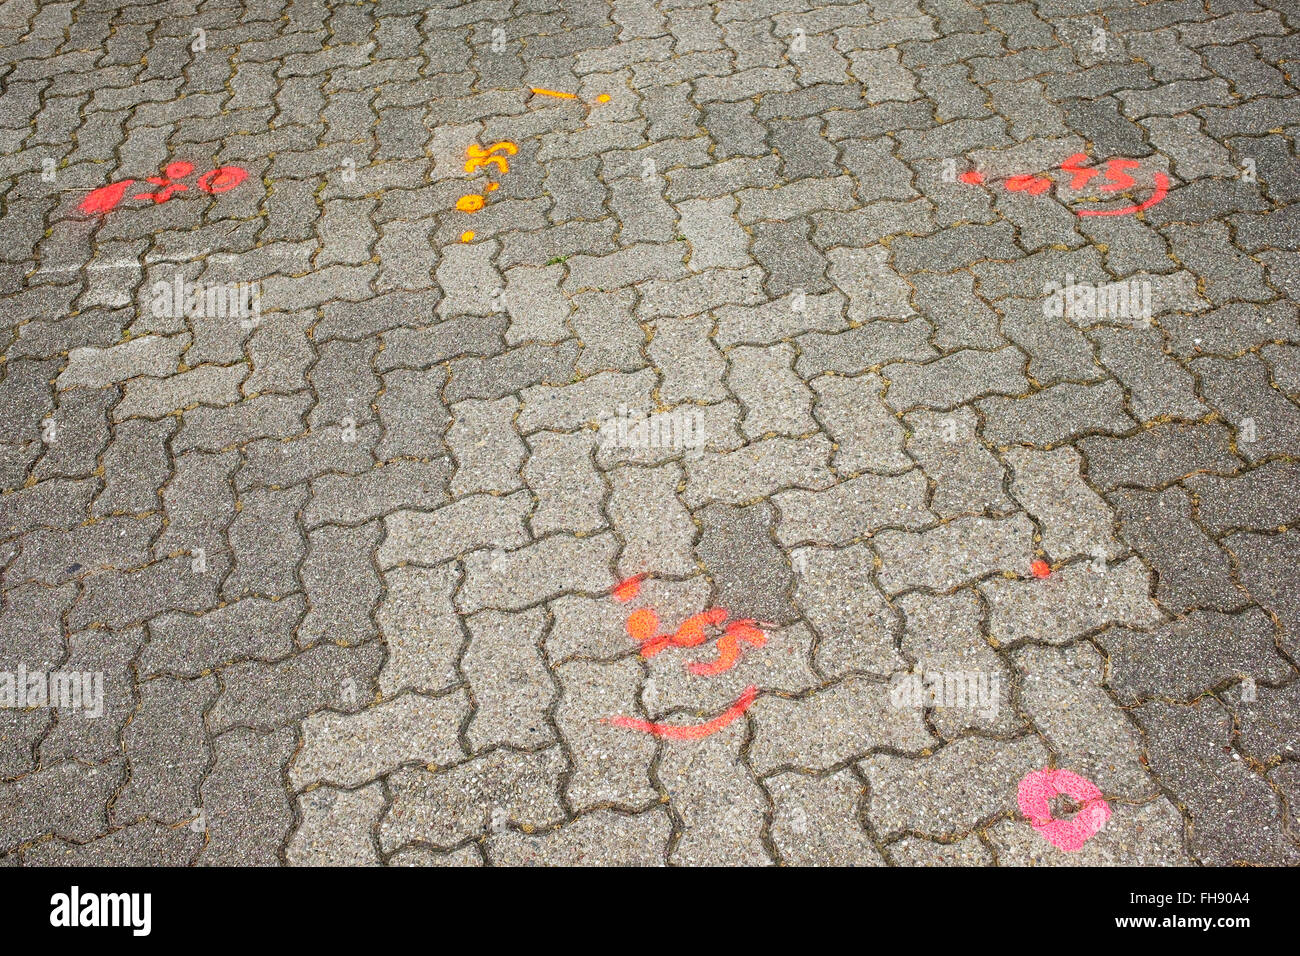 Cobbled pavement with markings before civil engineering, France - Stock Image